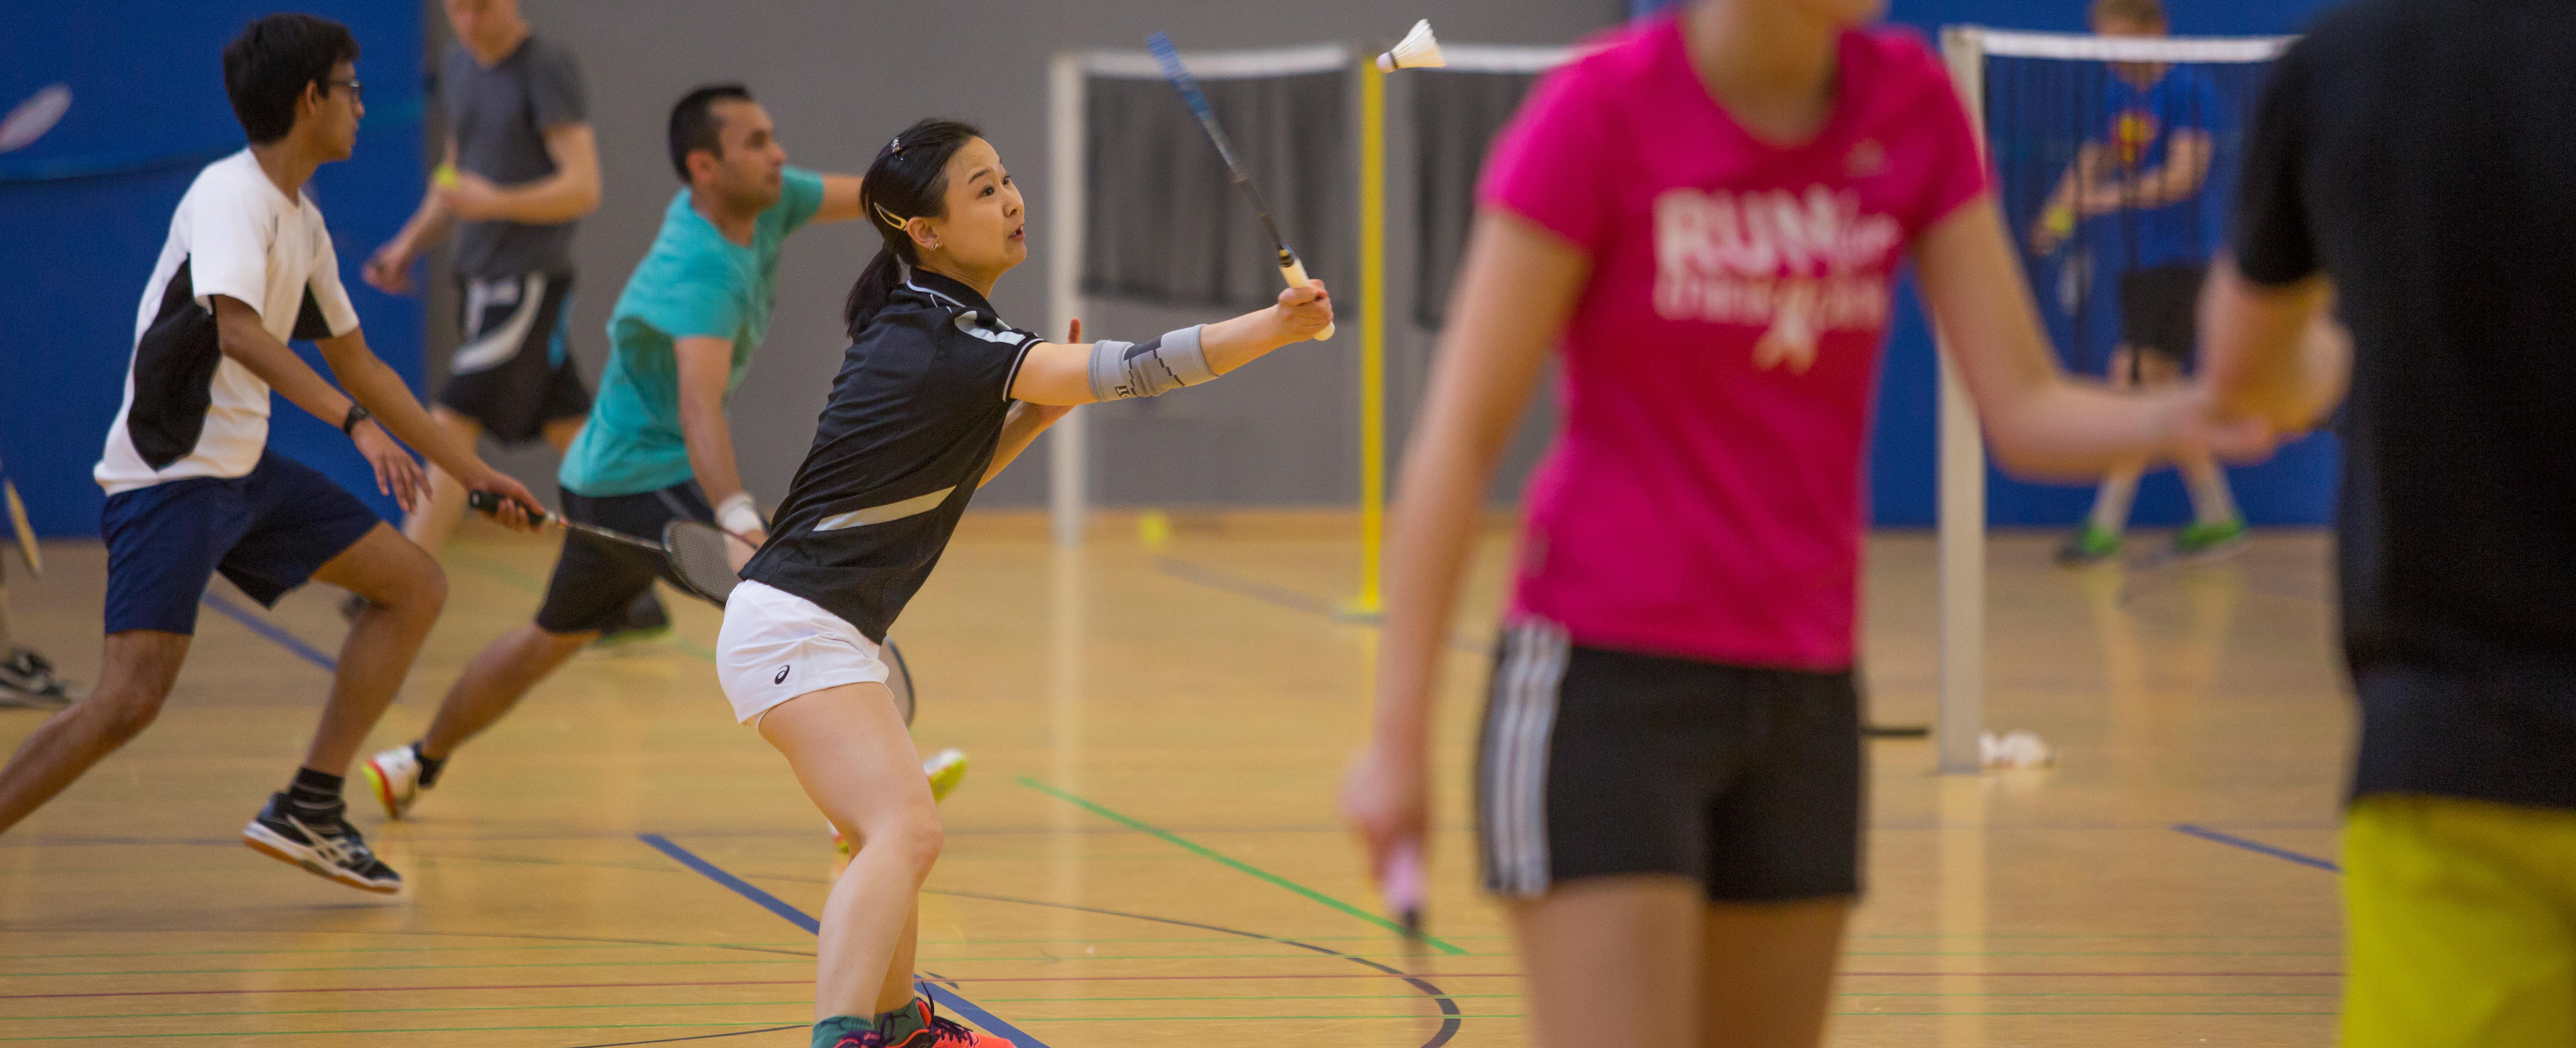 Badminton player at the net